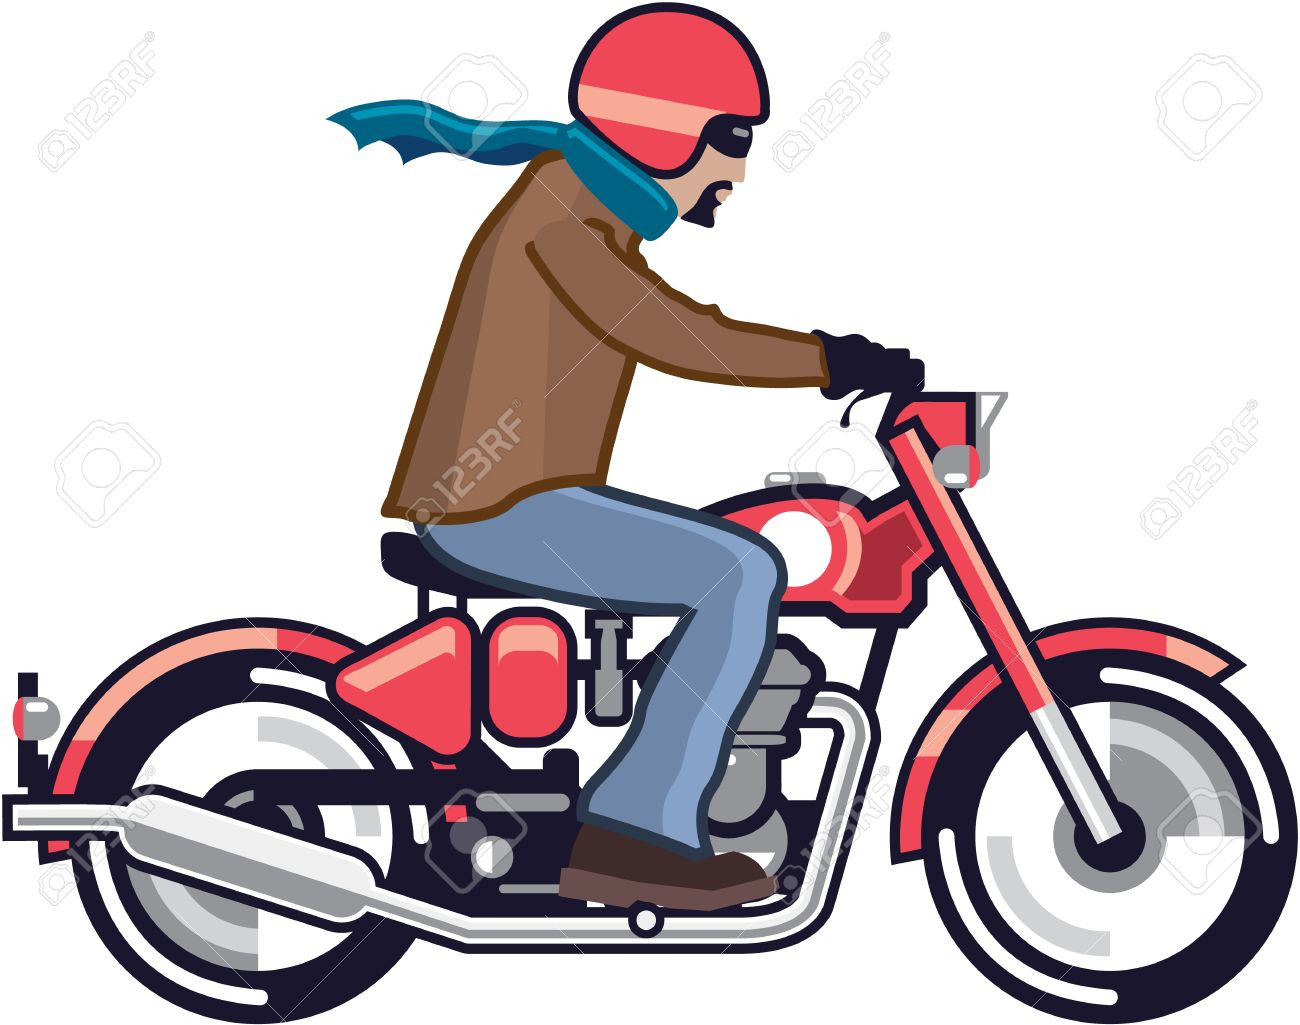 1300x1025 Harley Motorcycle Clipart. Trendy Labeled Clipart Free Motorcycle